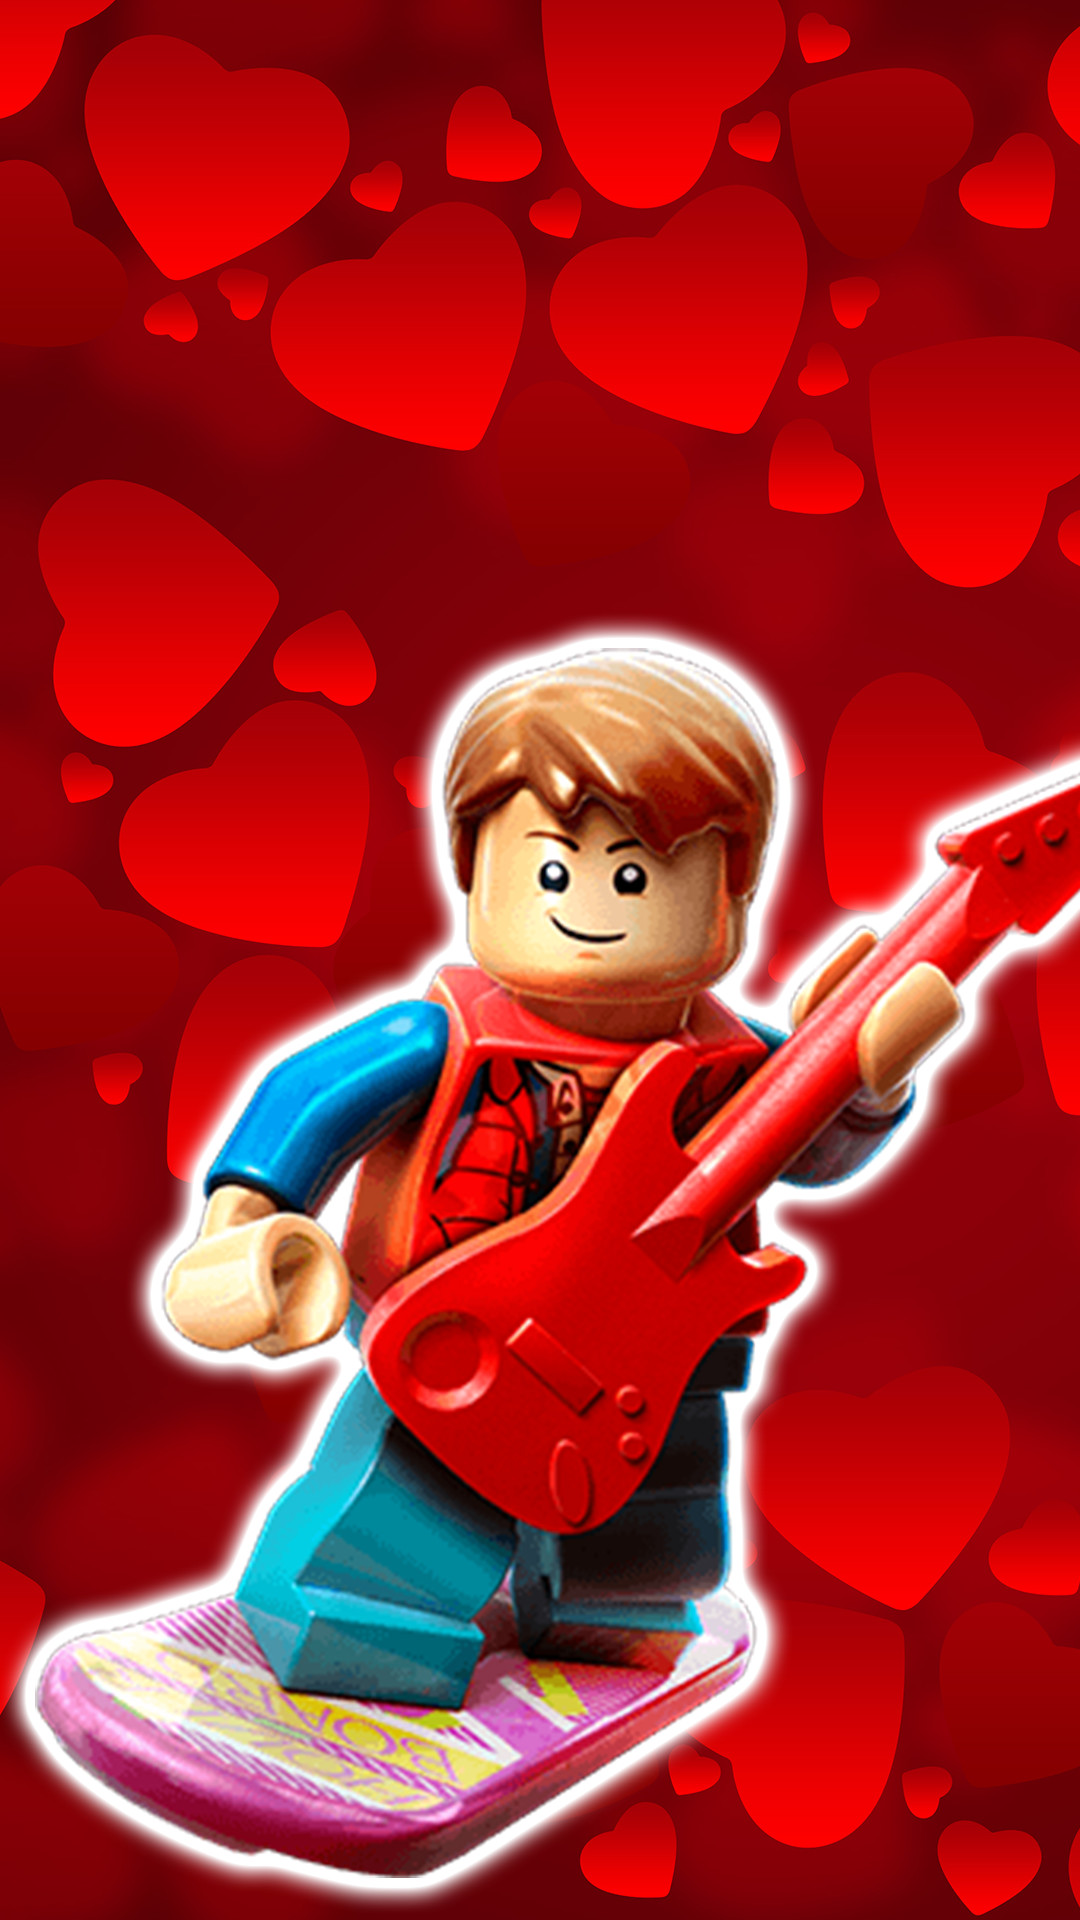 Marty McFly Lego Dimensions Wallpaper